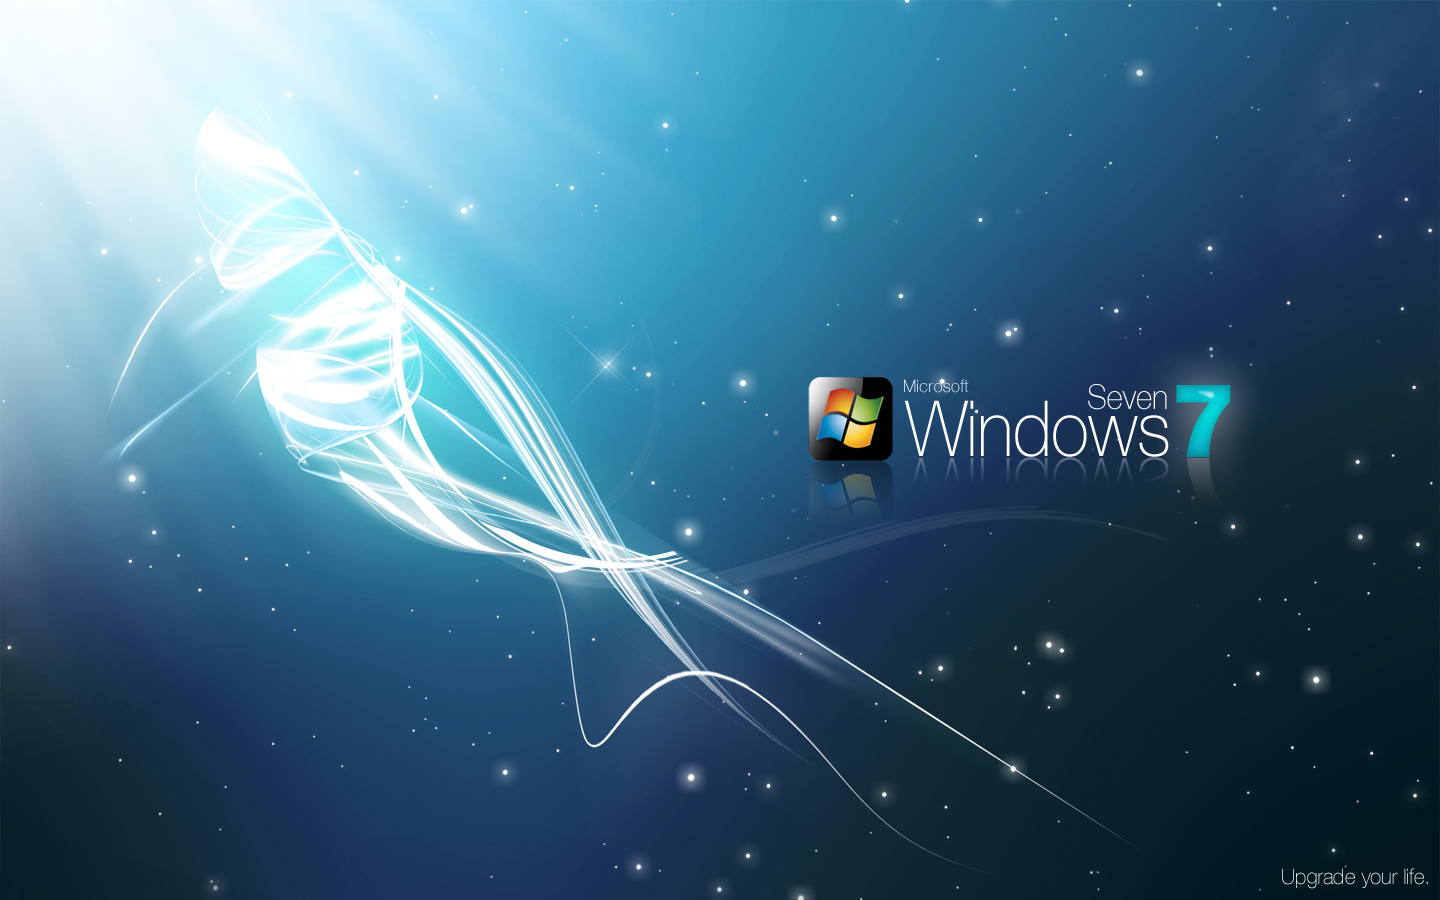 windows seven 7 original wide hd wallpapers - Windows 7 Ultimate Bright Black HD desktop wallpaper